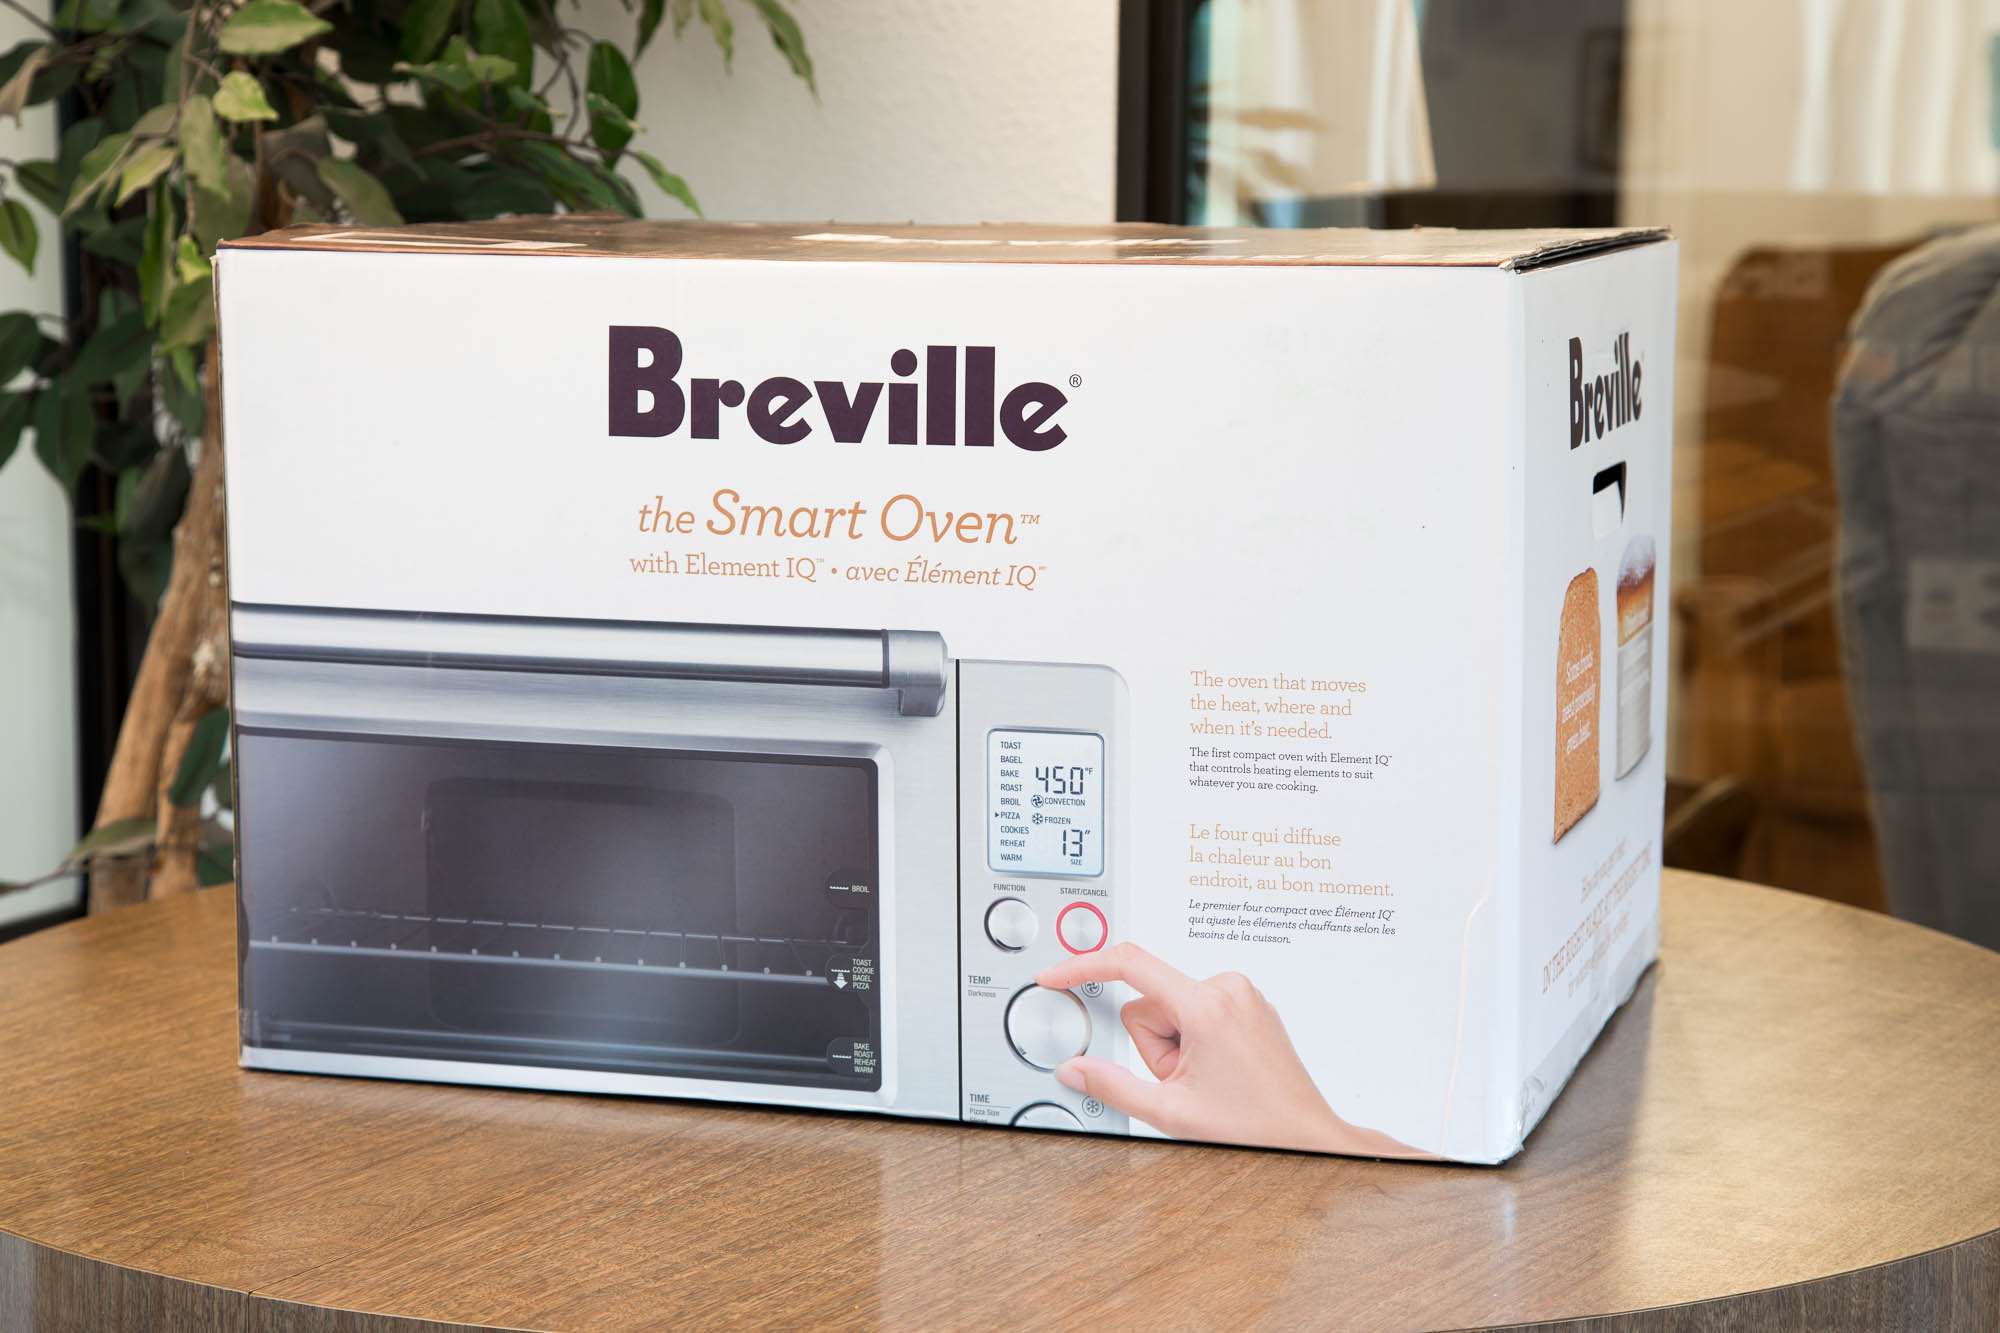 BOV800XL Smart Oven Review